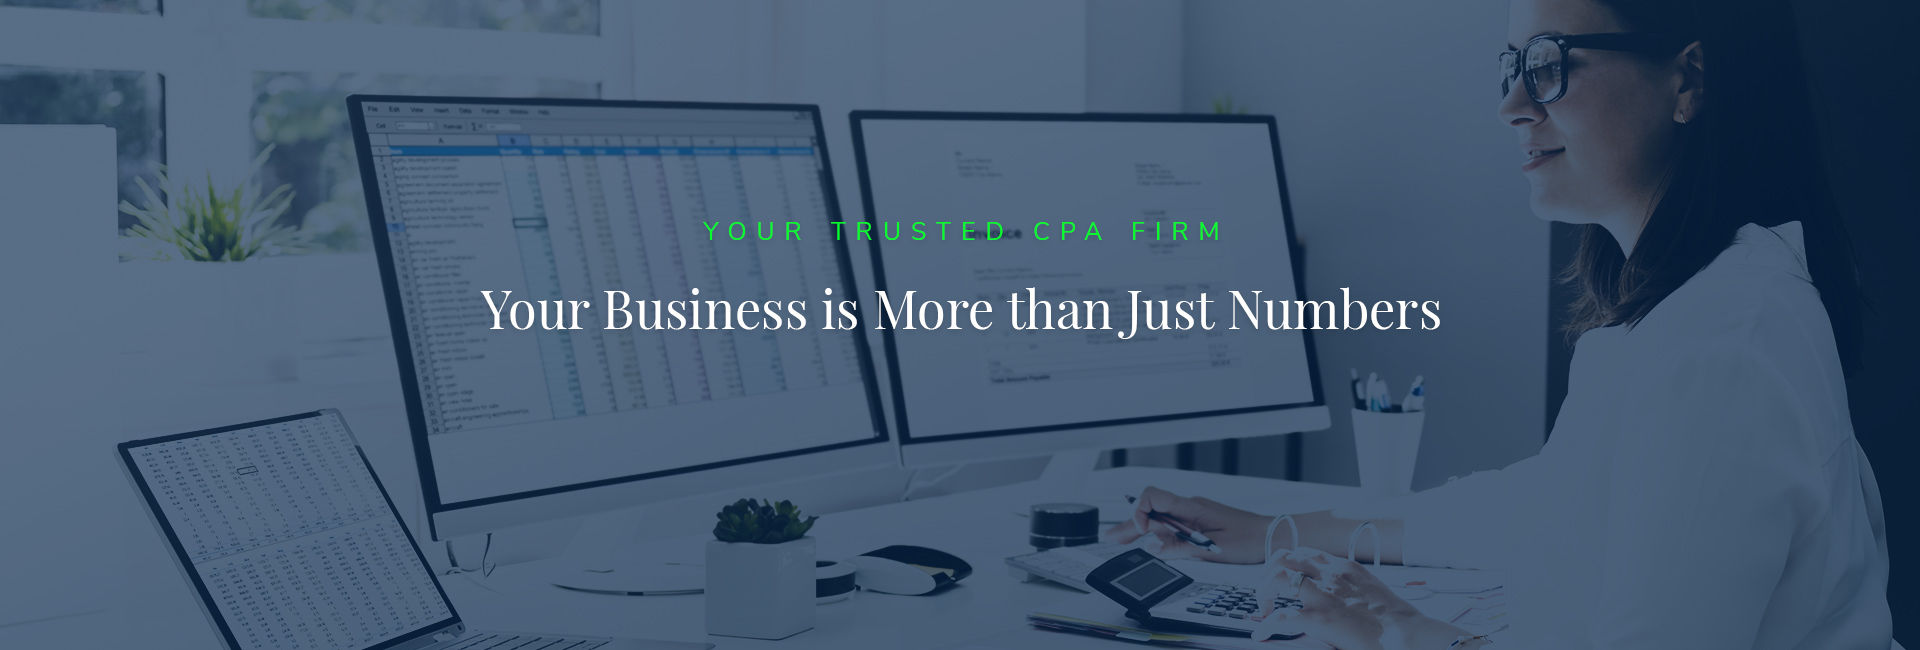 Kate Smith CPA business accountant